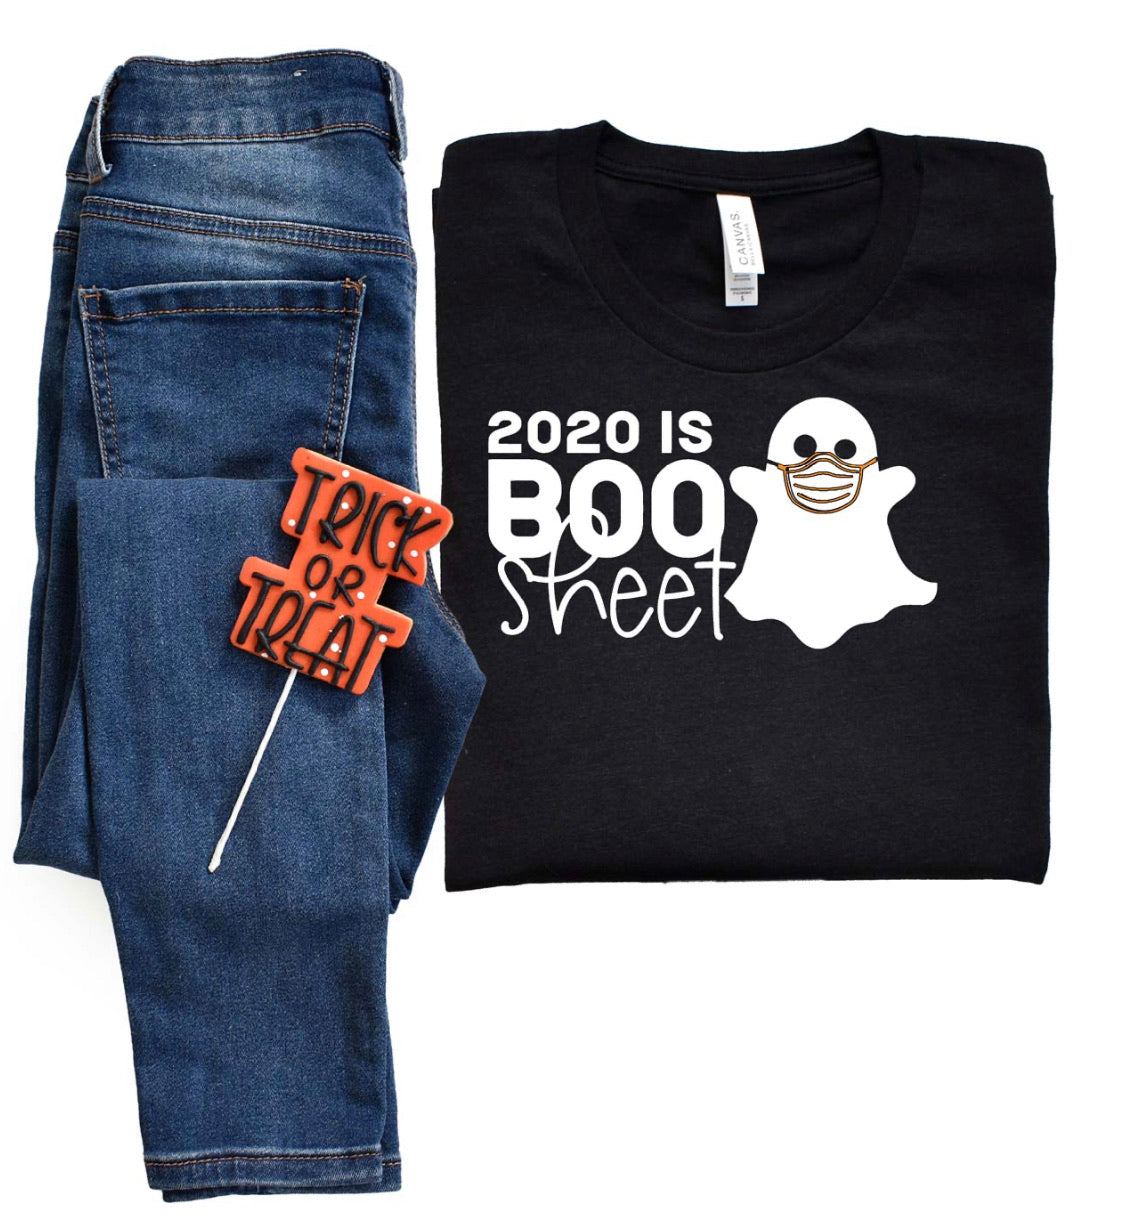 2020 is boo sheet